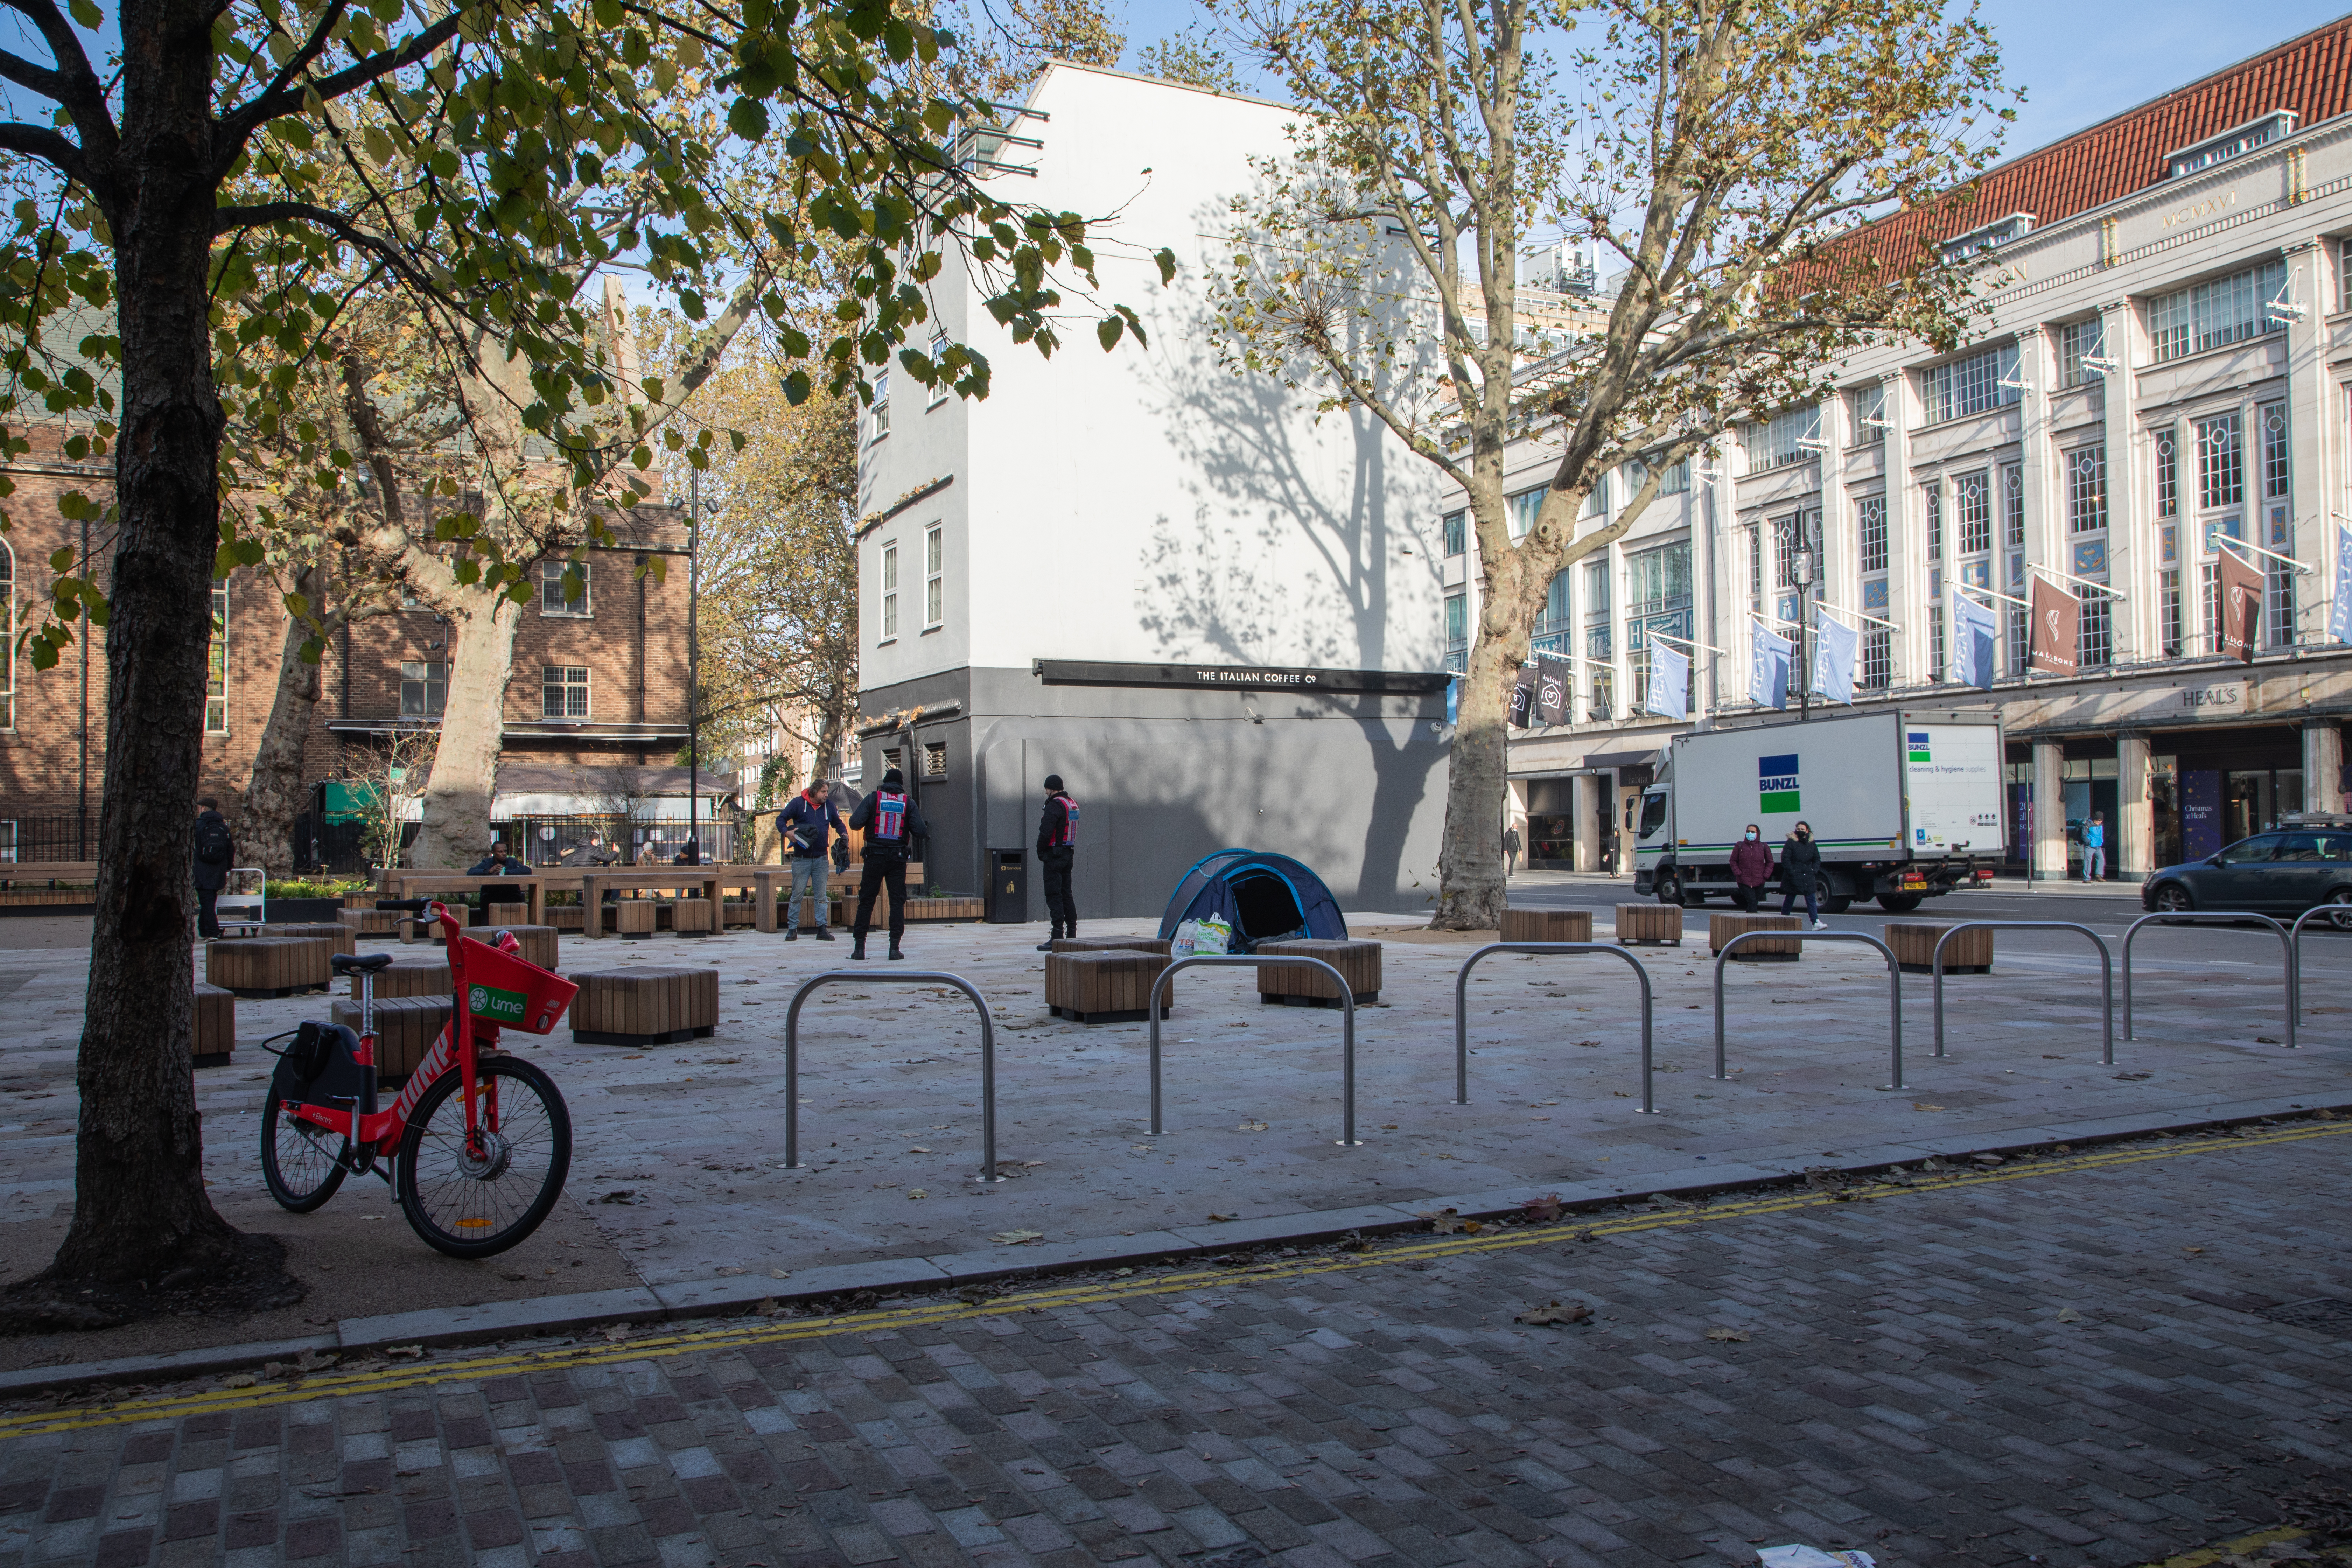 View of Whitfield Gardens after restoration showing new cycle hoops